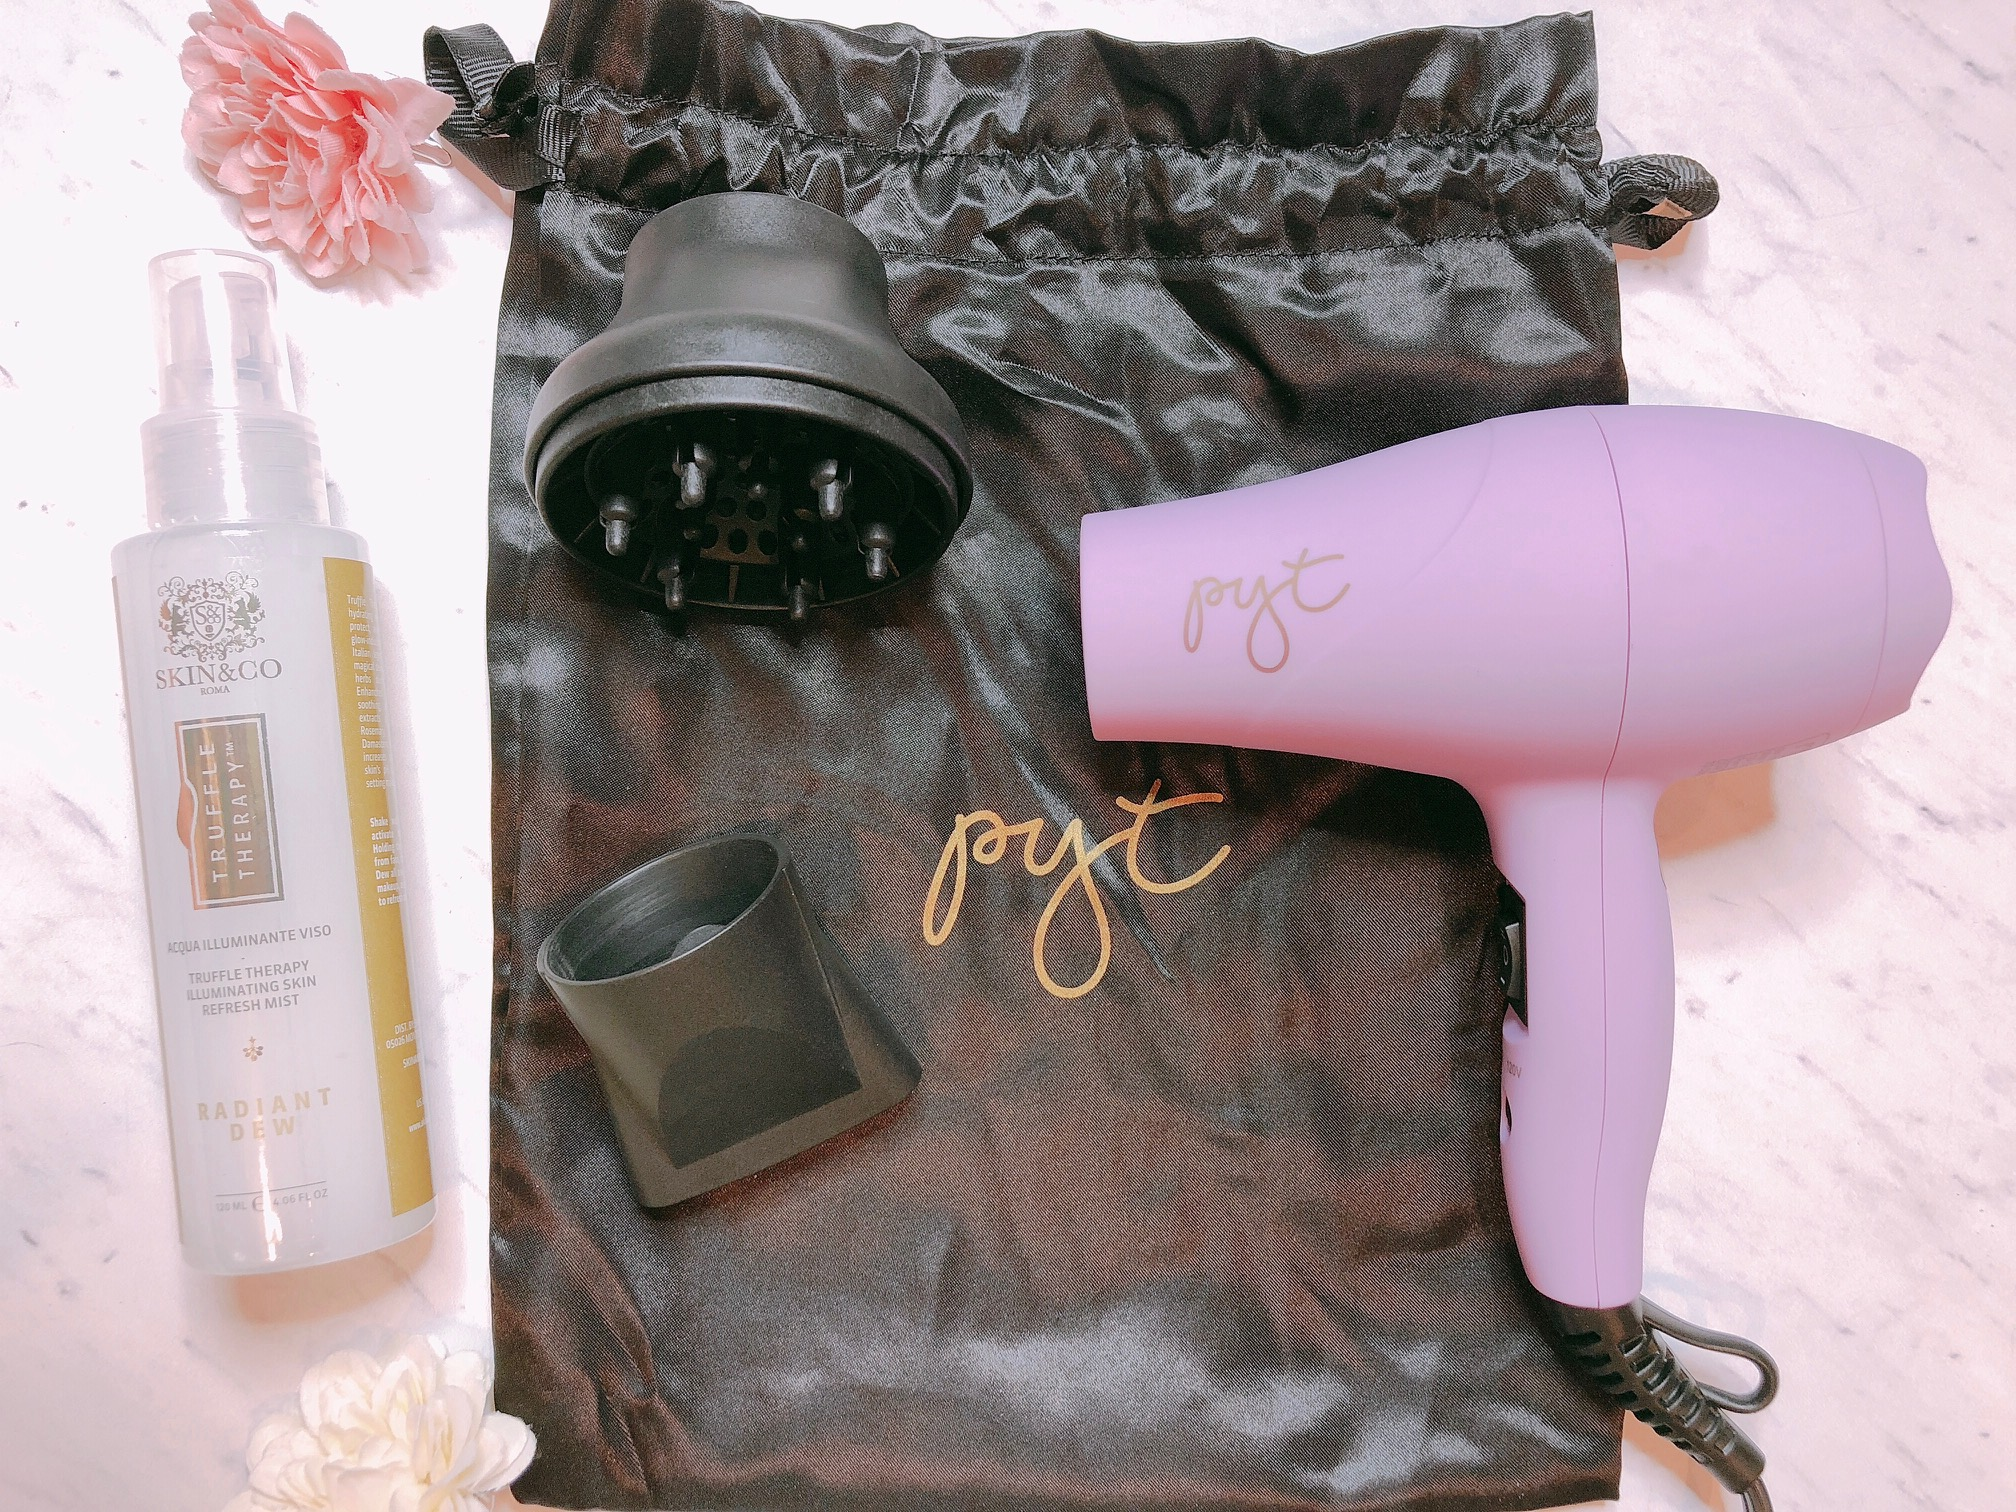 PYT mini hair dryer with attachments